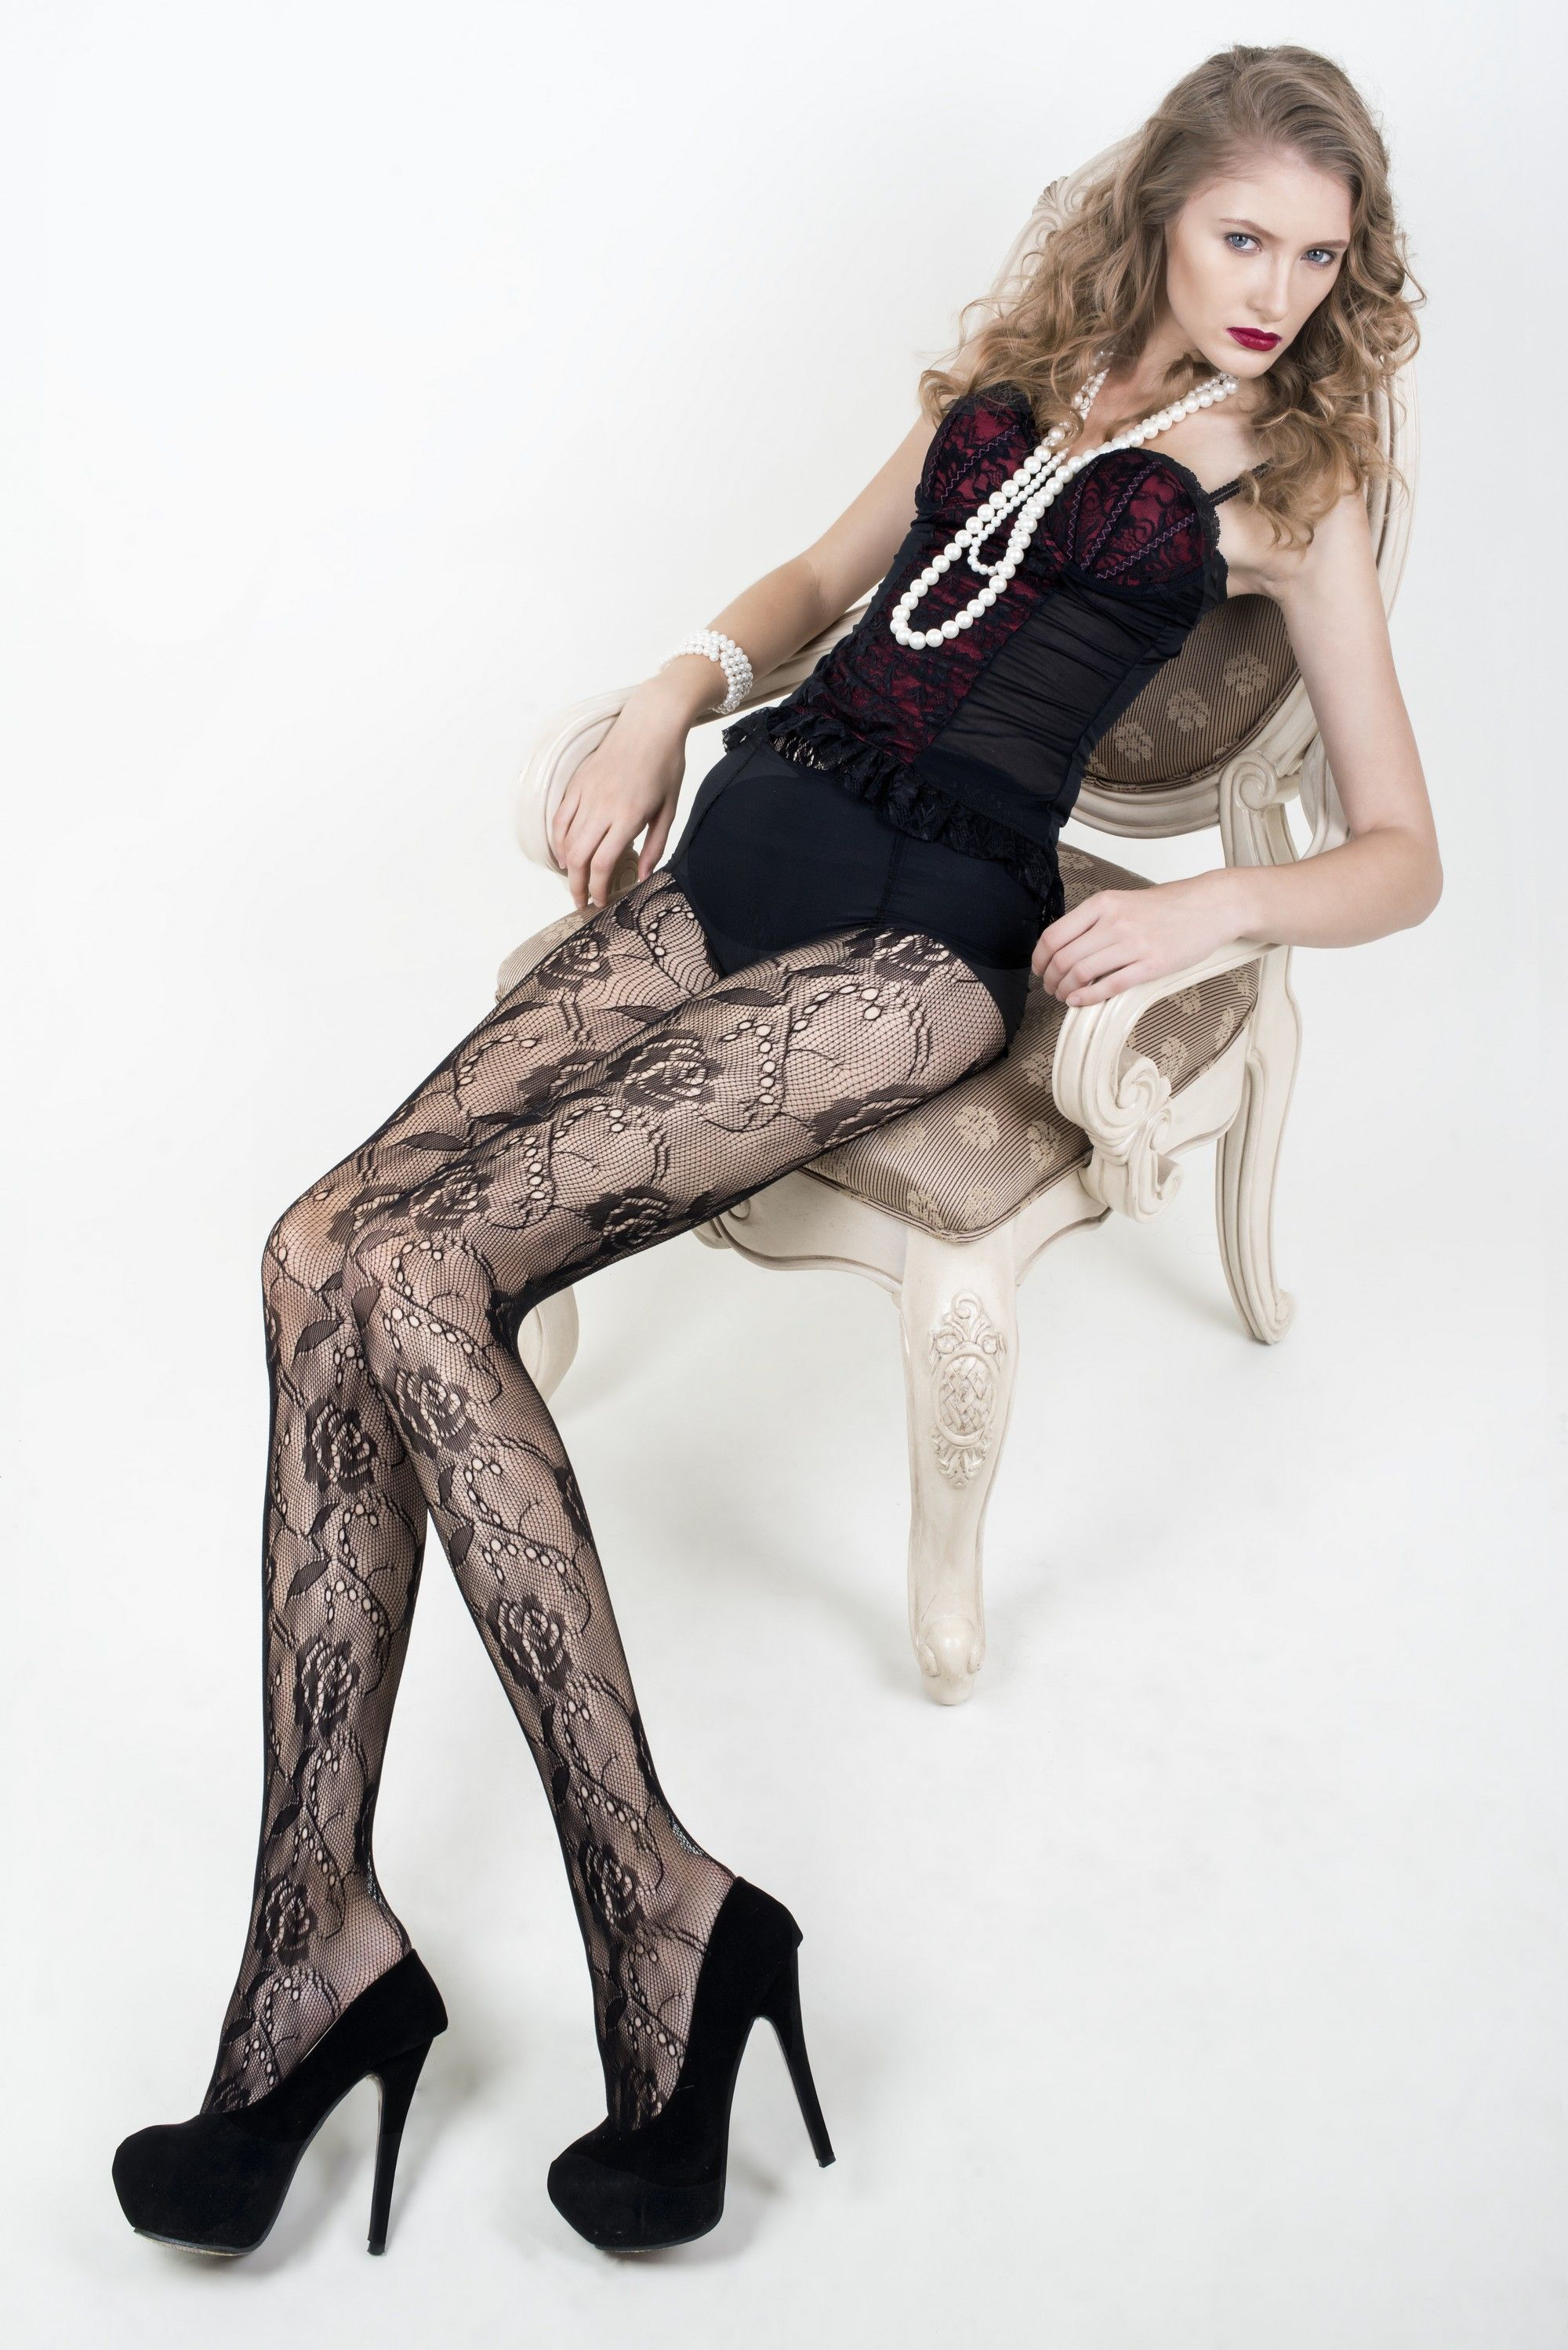 Pantyhose Pics Featuring 74